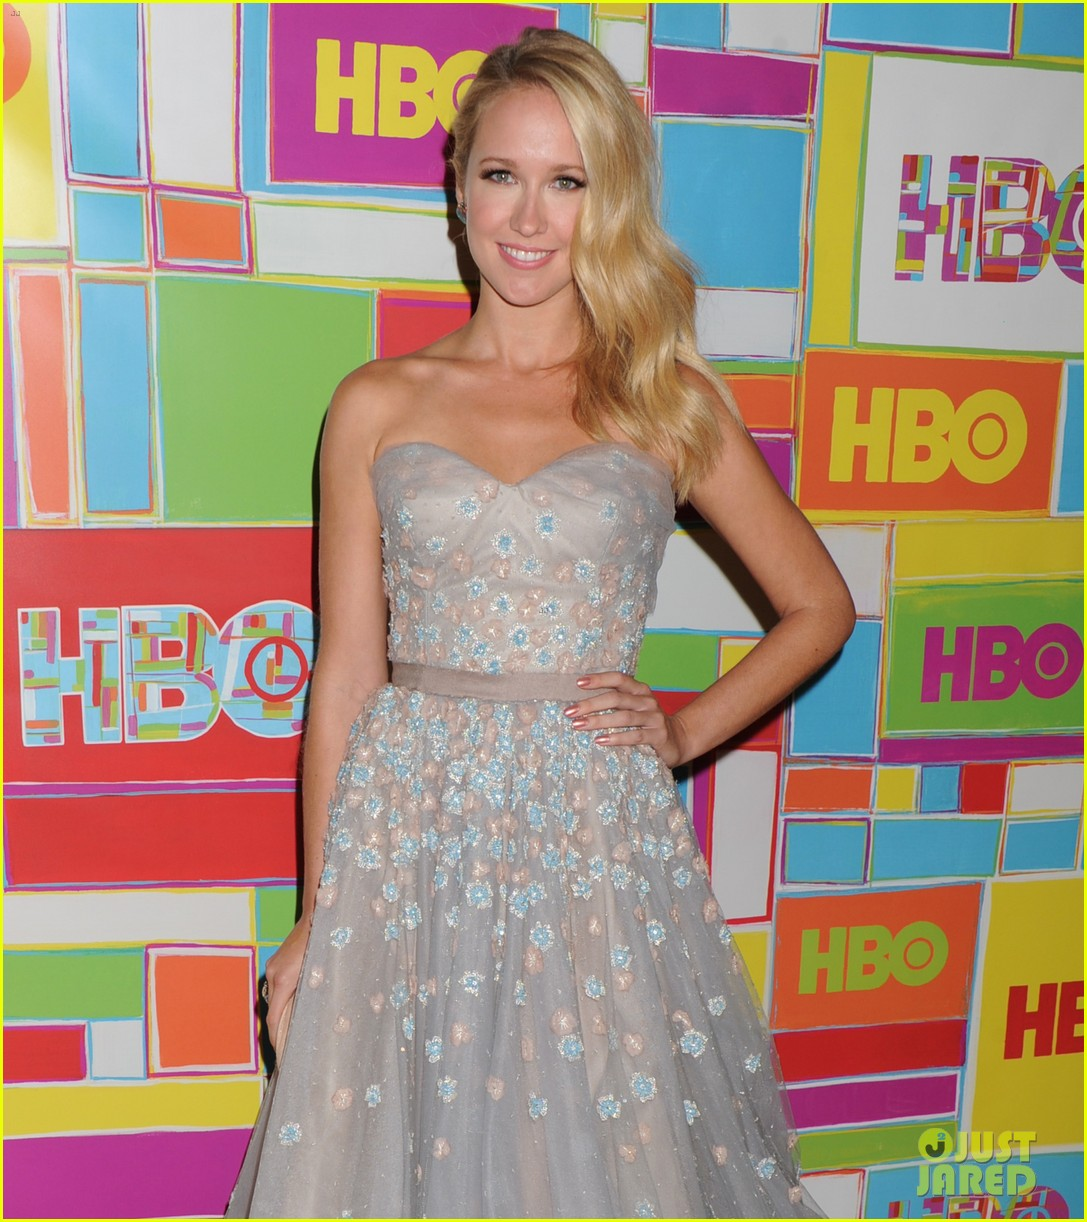 anna camp skylar astin are picture perfect duo at hbos emmys 093184048